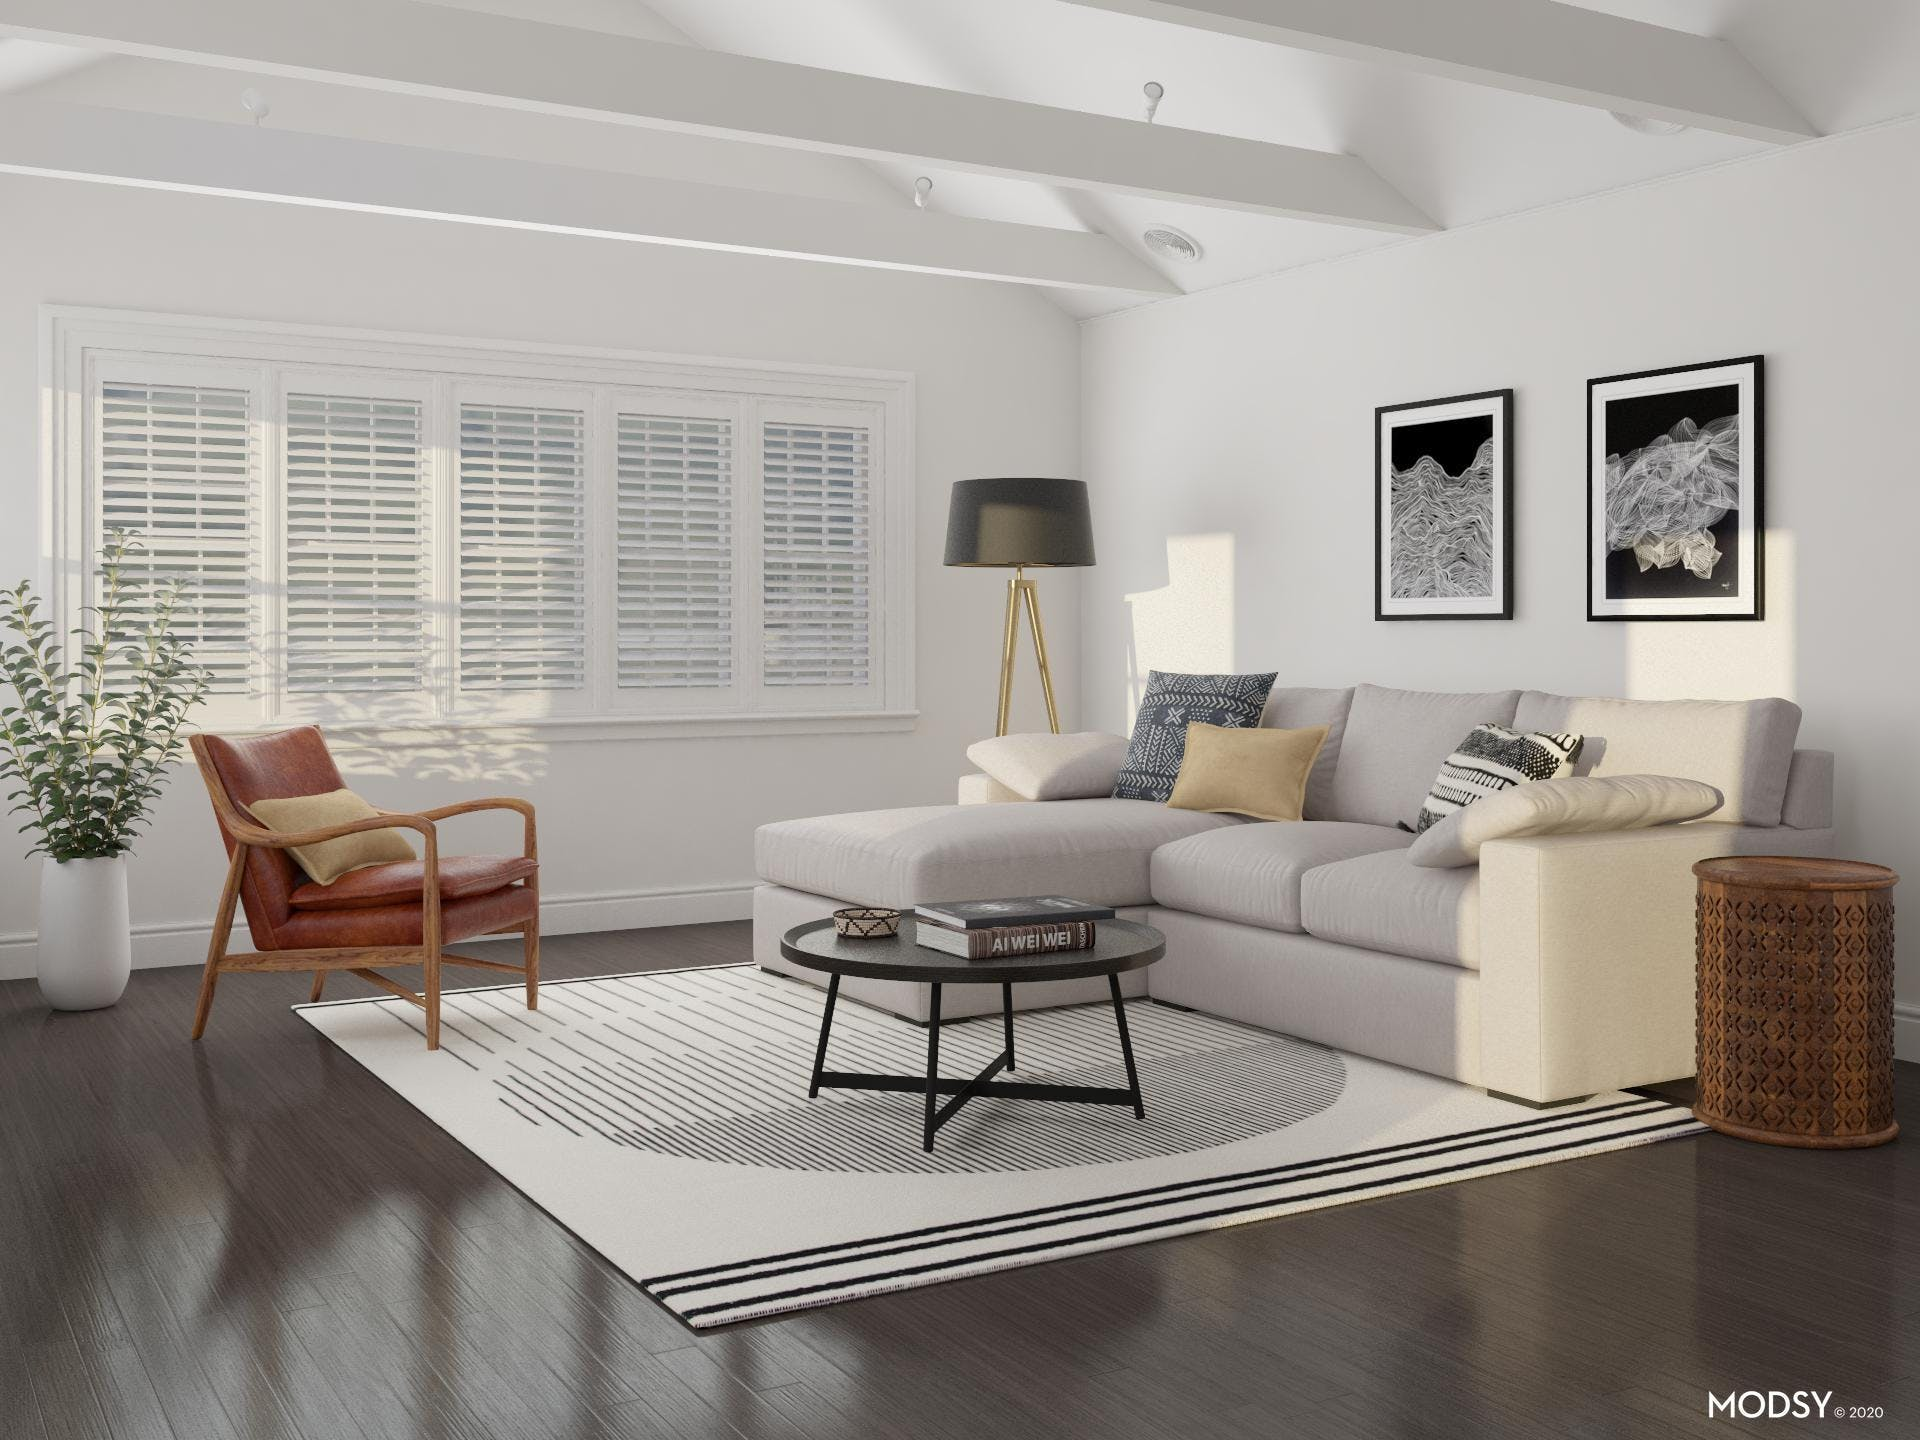 Abstract Patterned Rug Adds Pattern to Comfy Contemporary Living Room